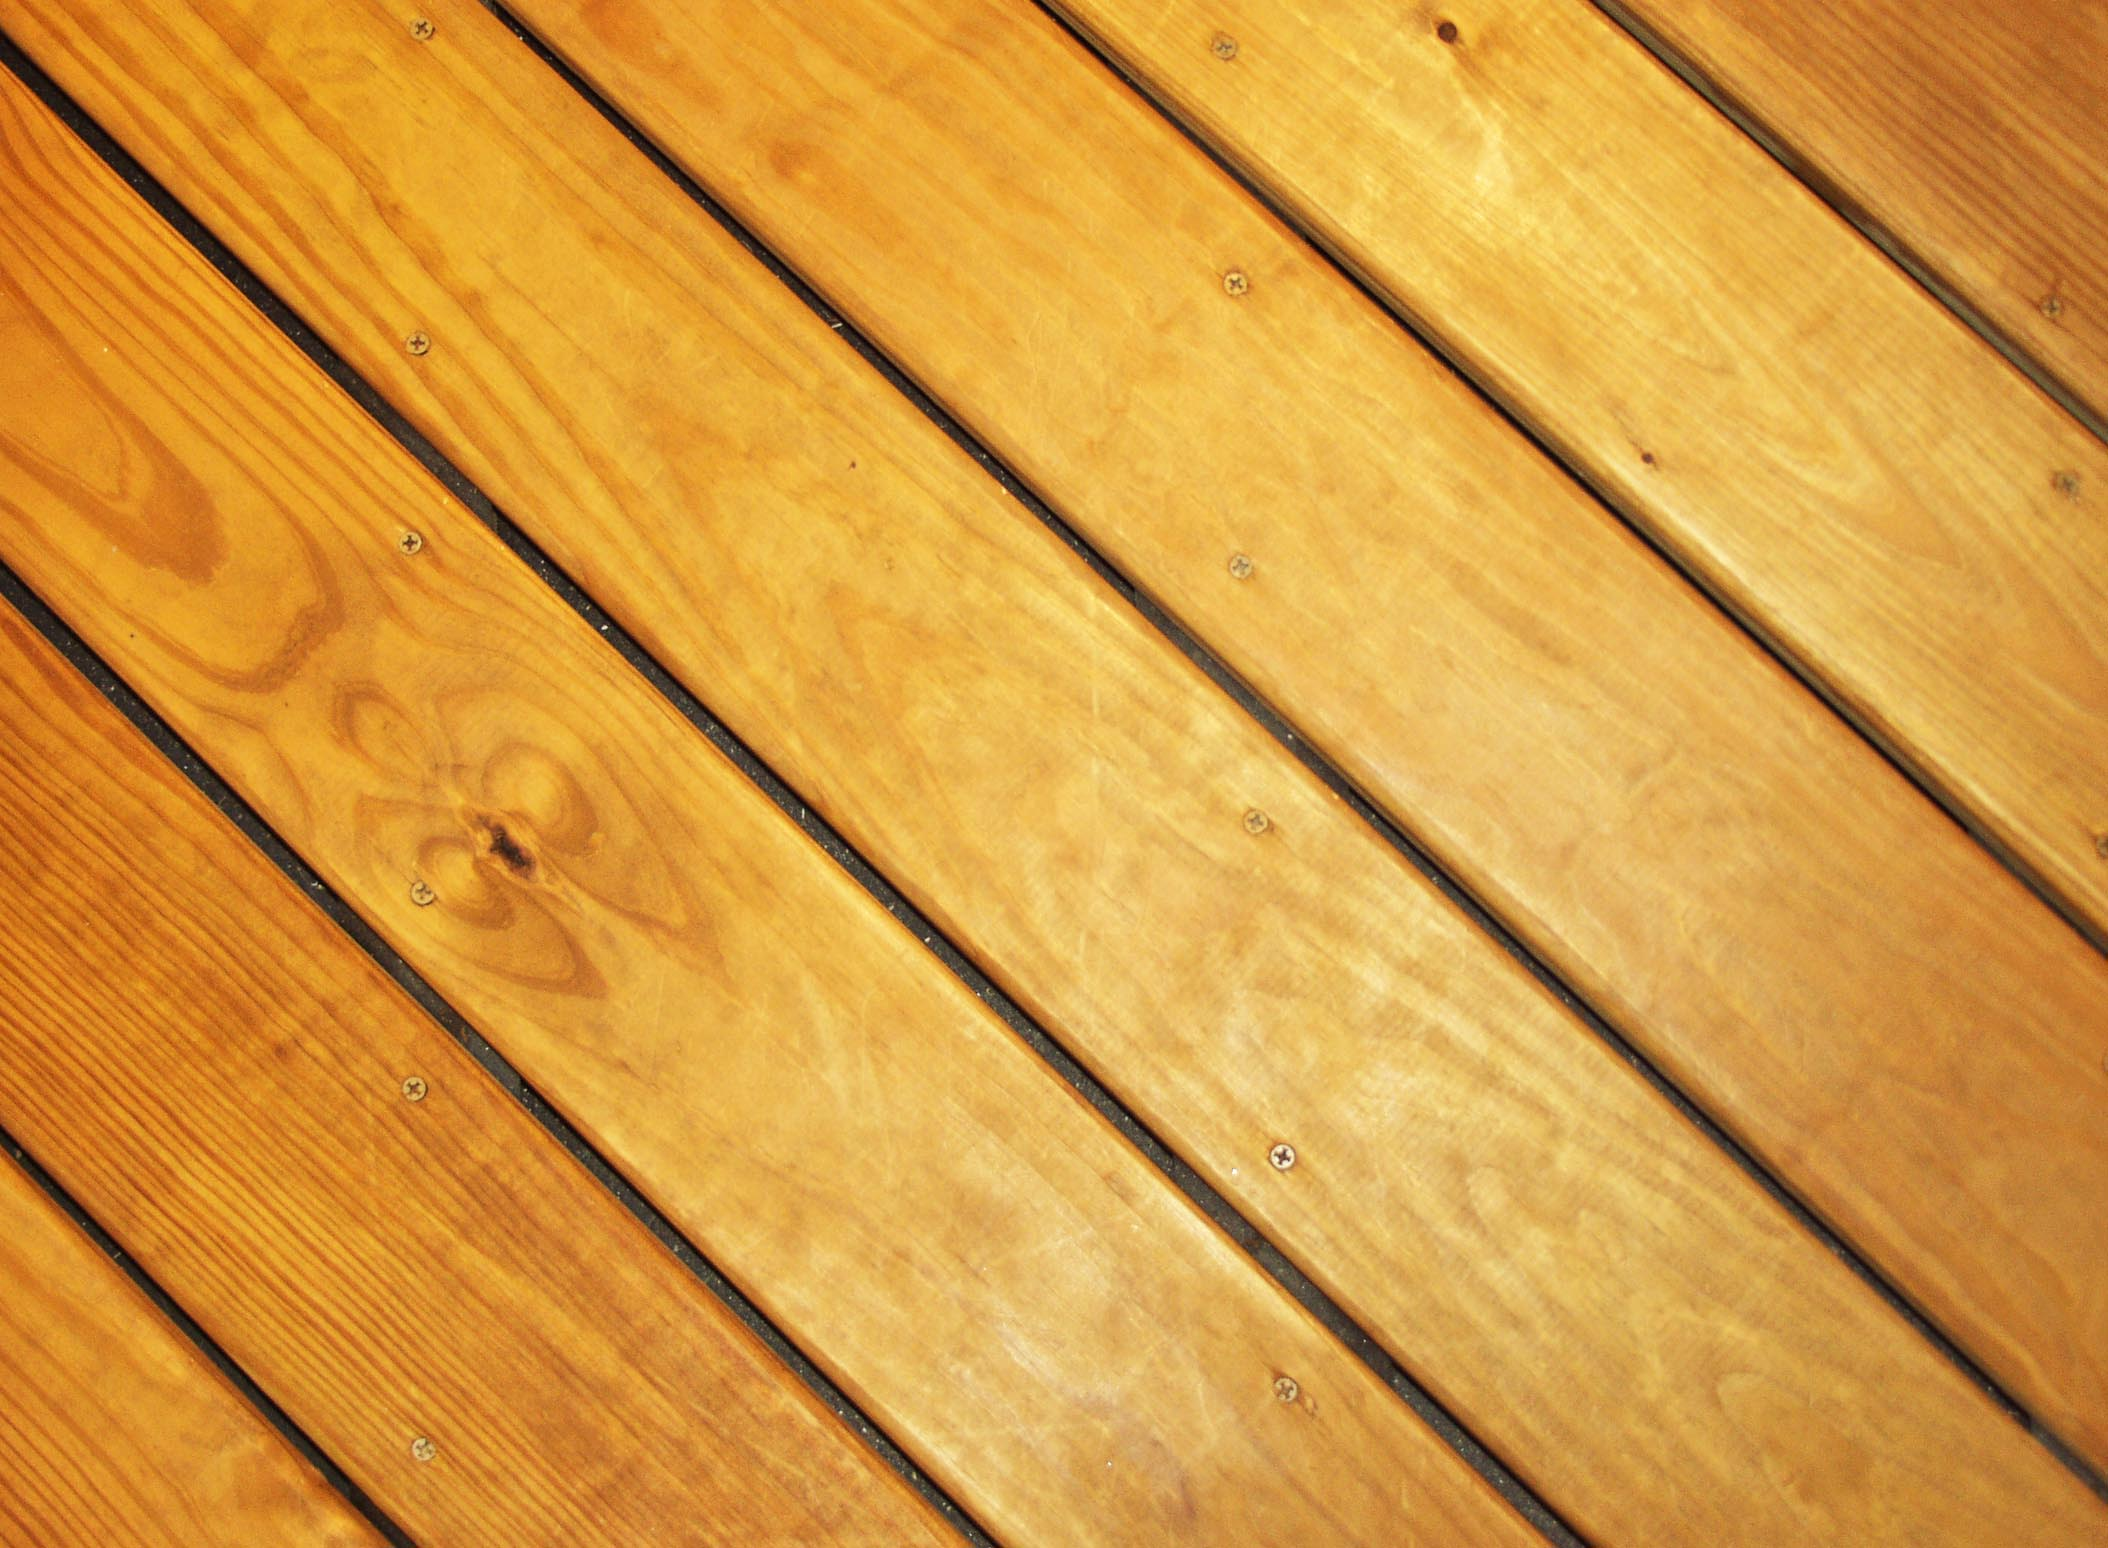 When To Stain Pressure Treated Wood - But you have not treated it for years and now it looks like this